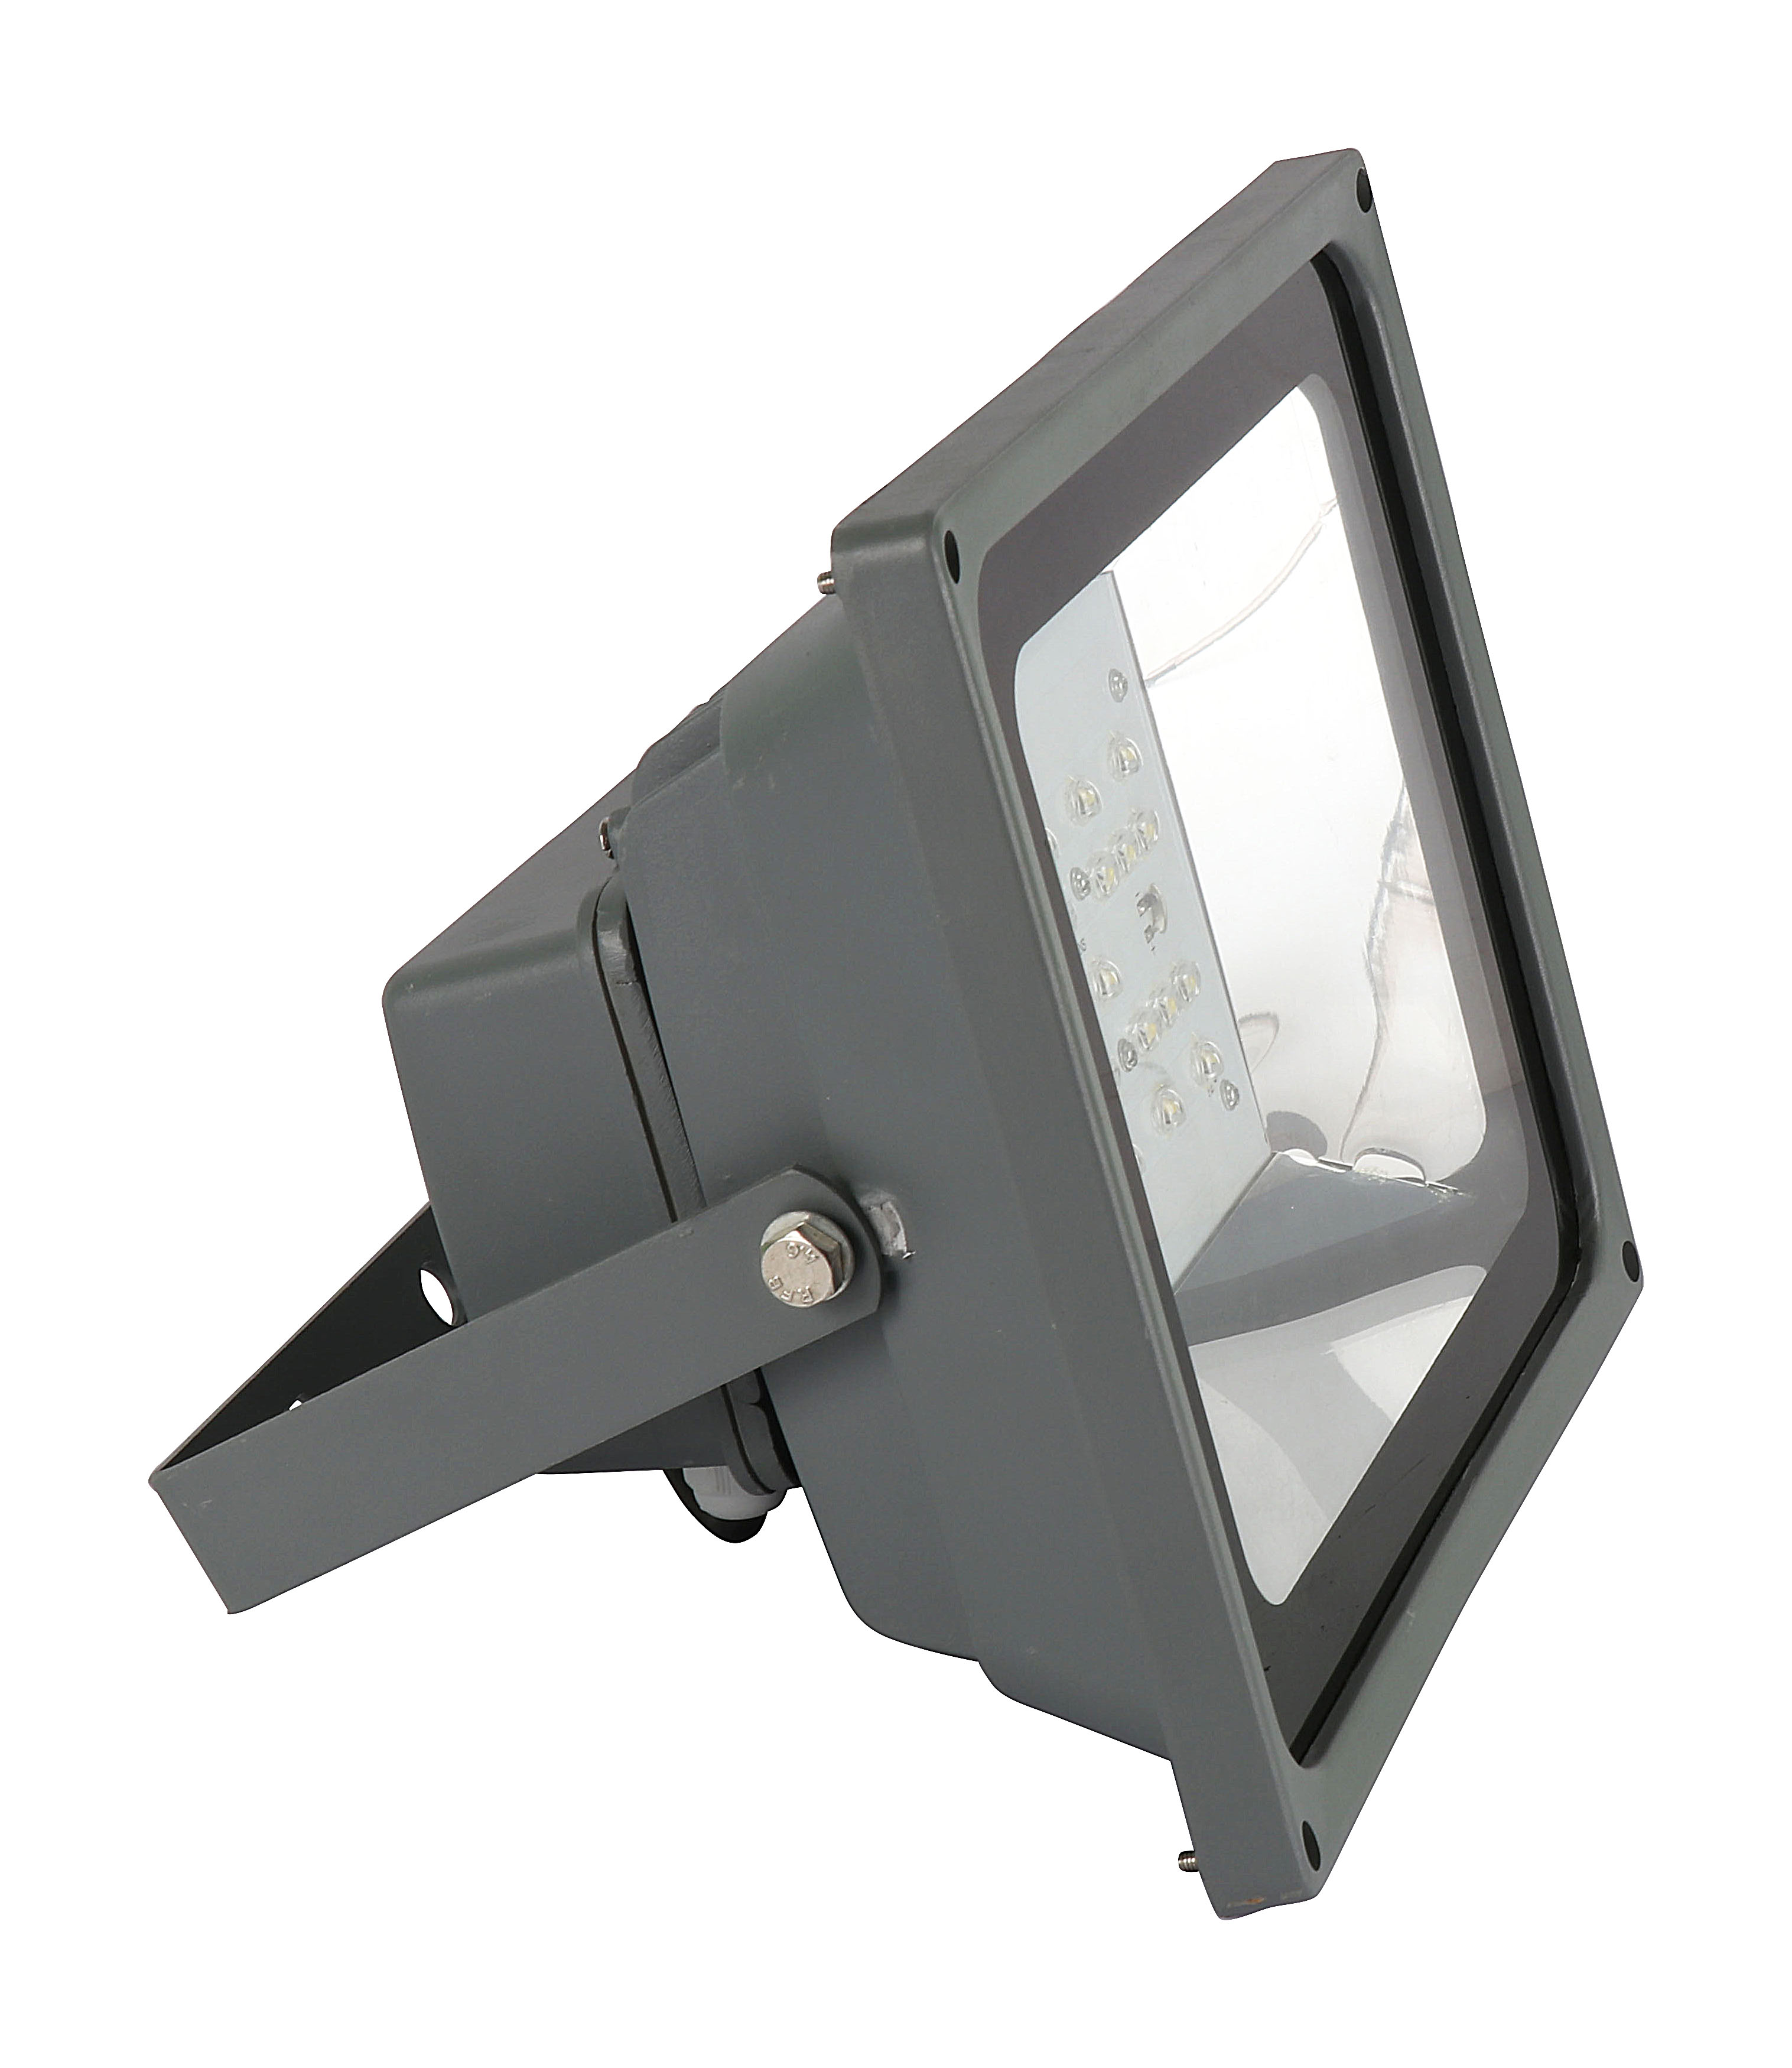 led flood light side view